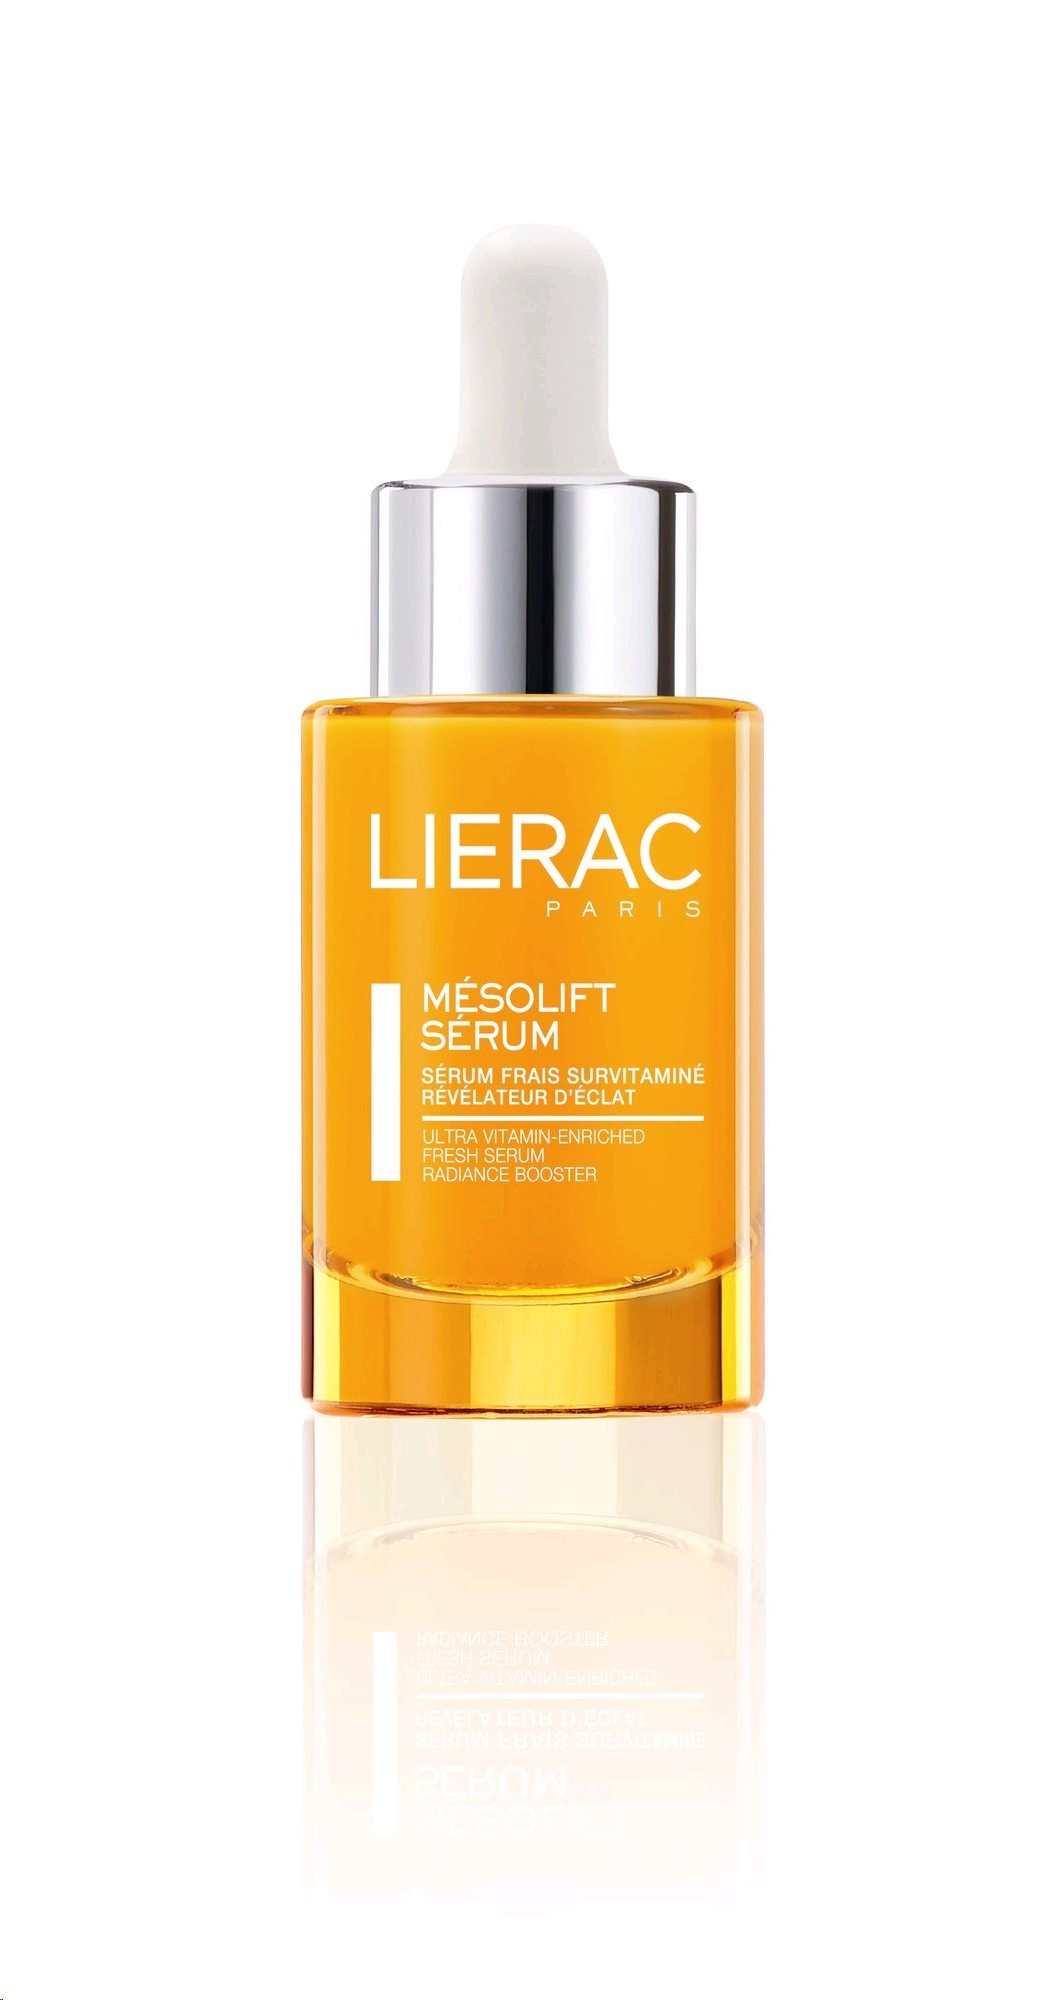 LIERAC MESOLIFT SERUM 30ML